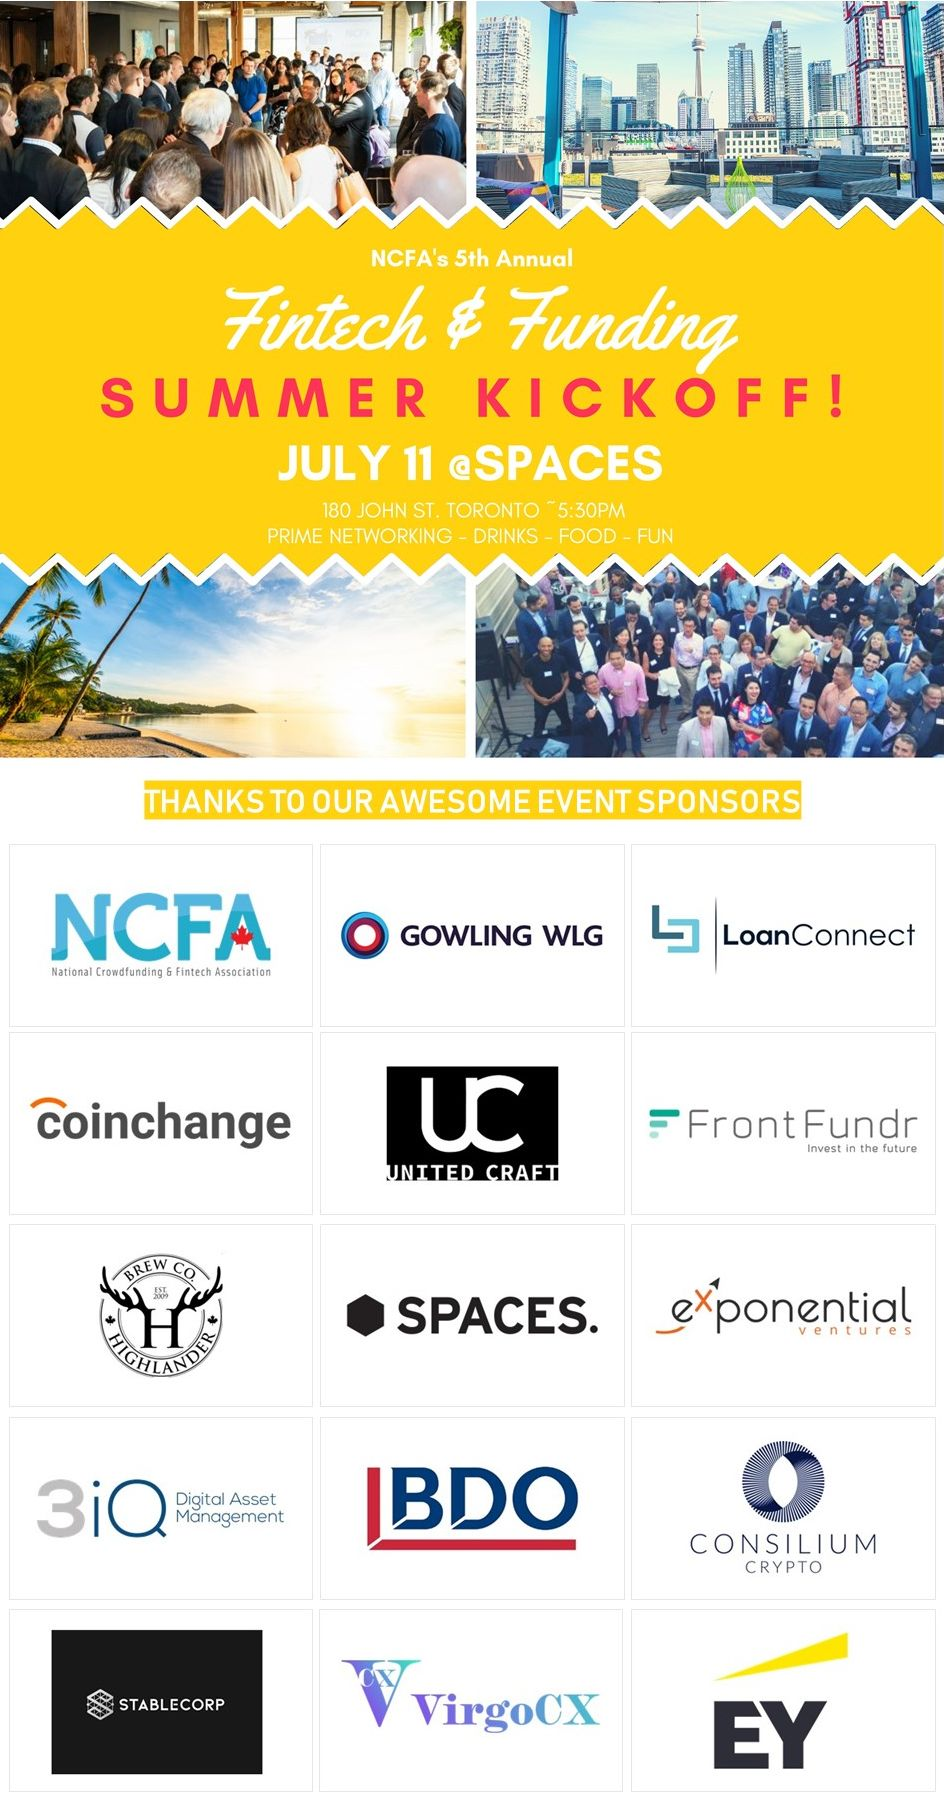 NCFA Annual Summer Kickoff Networking Event July 11, 2019 Toronto